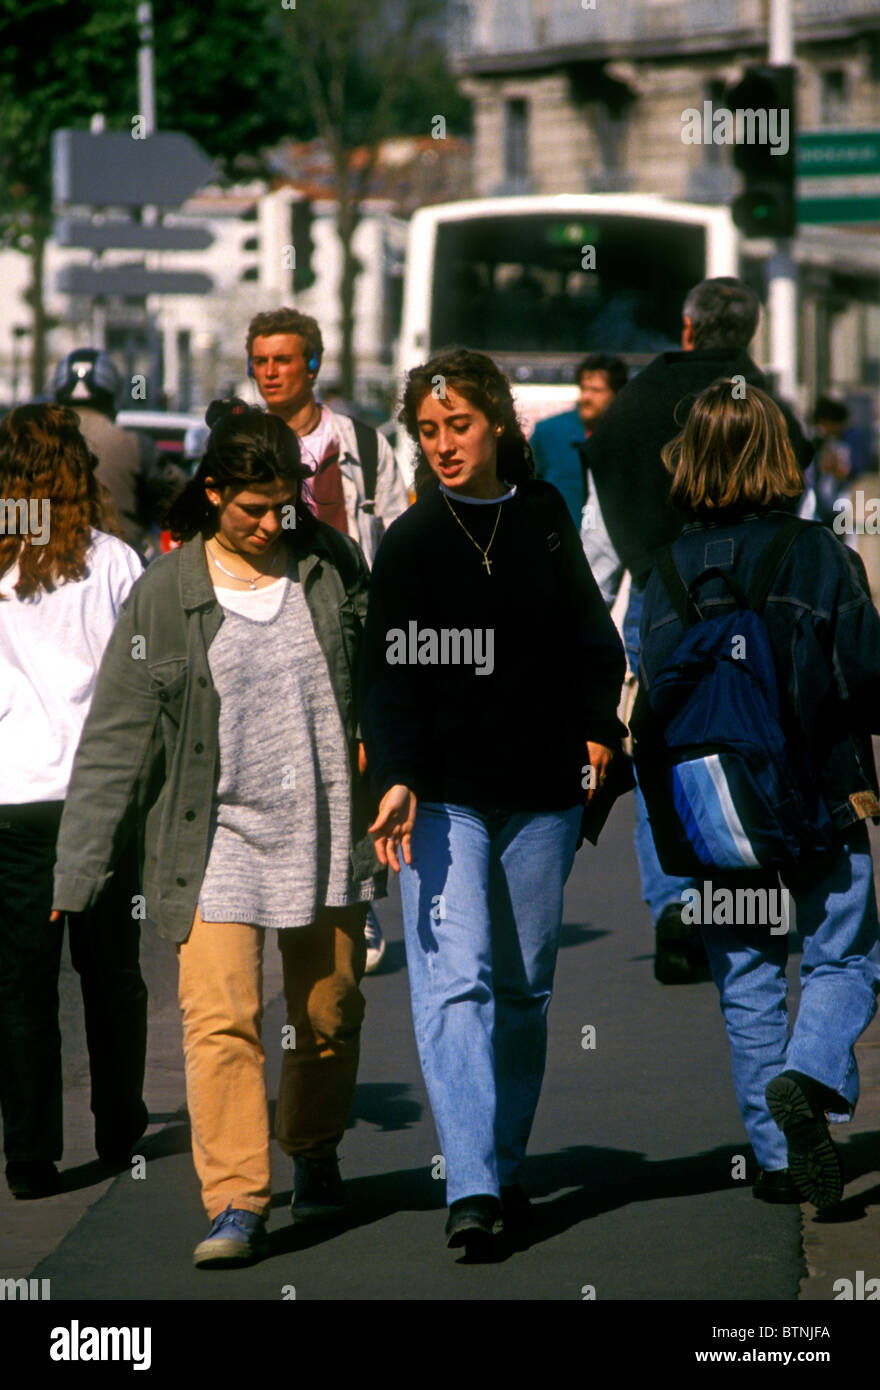 French People Students Lycee Charlemagne Stock Photos: Frenchwomen French People Women Females Walking Along